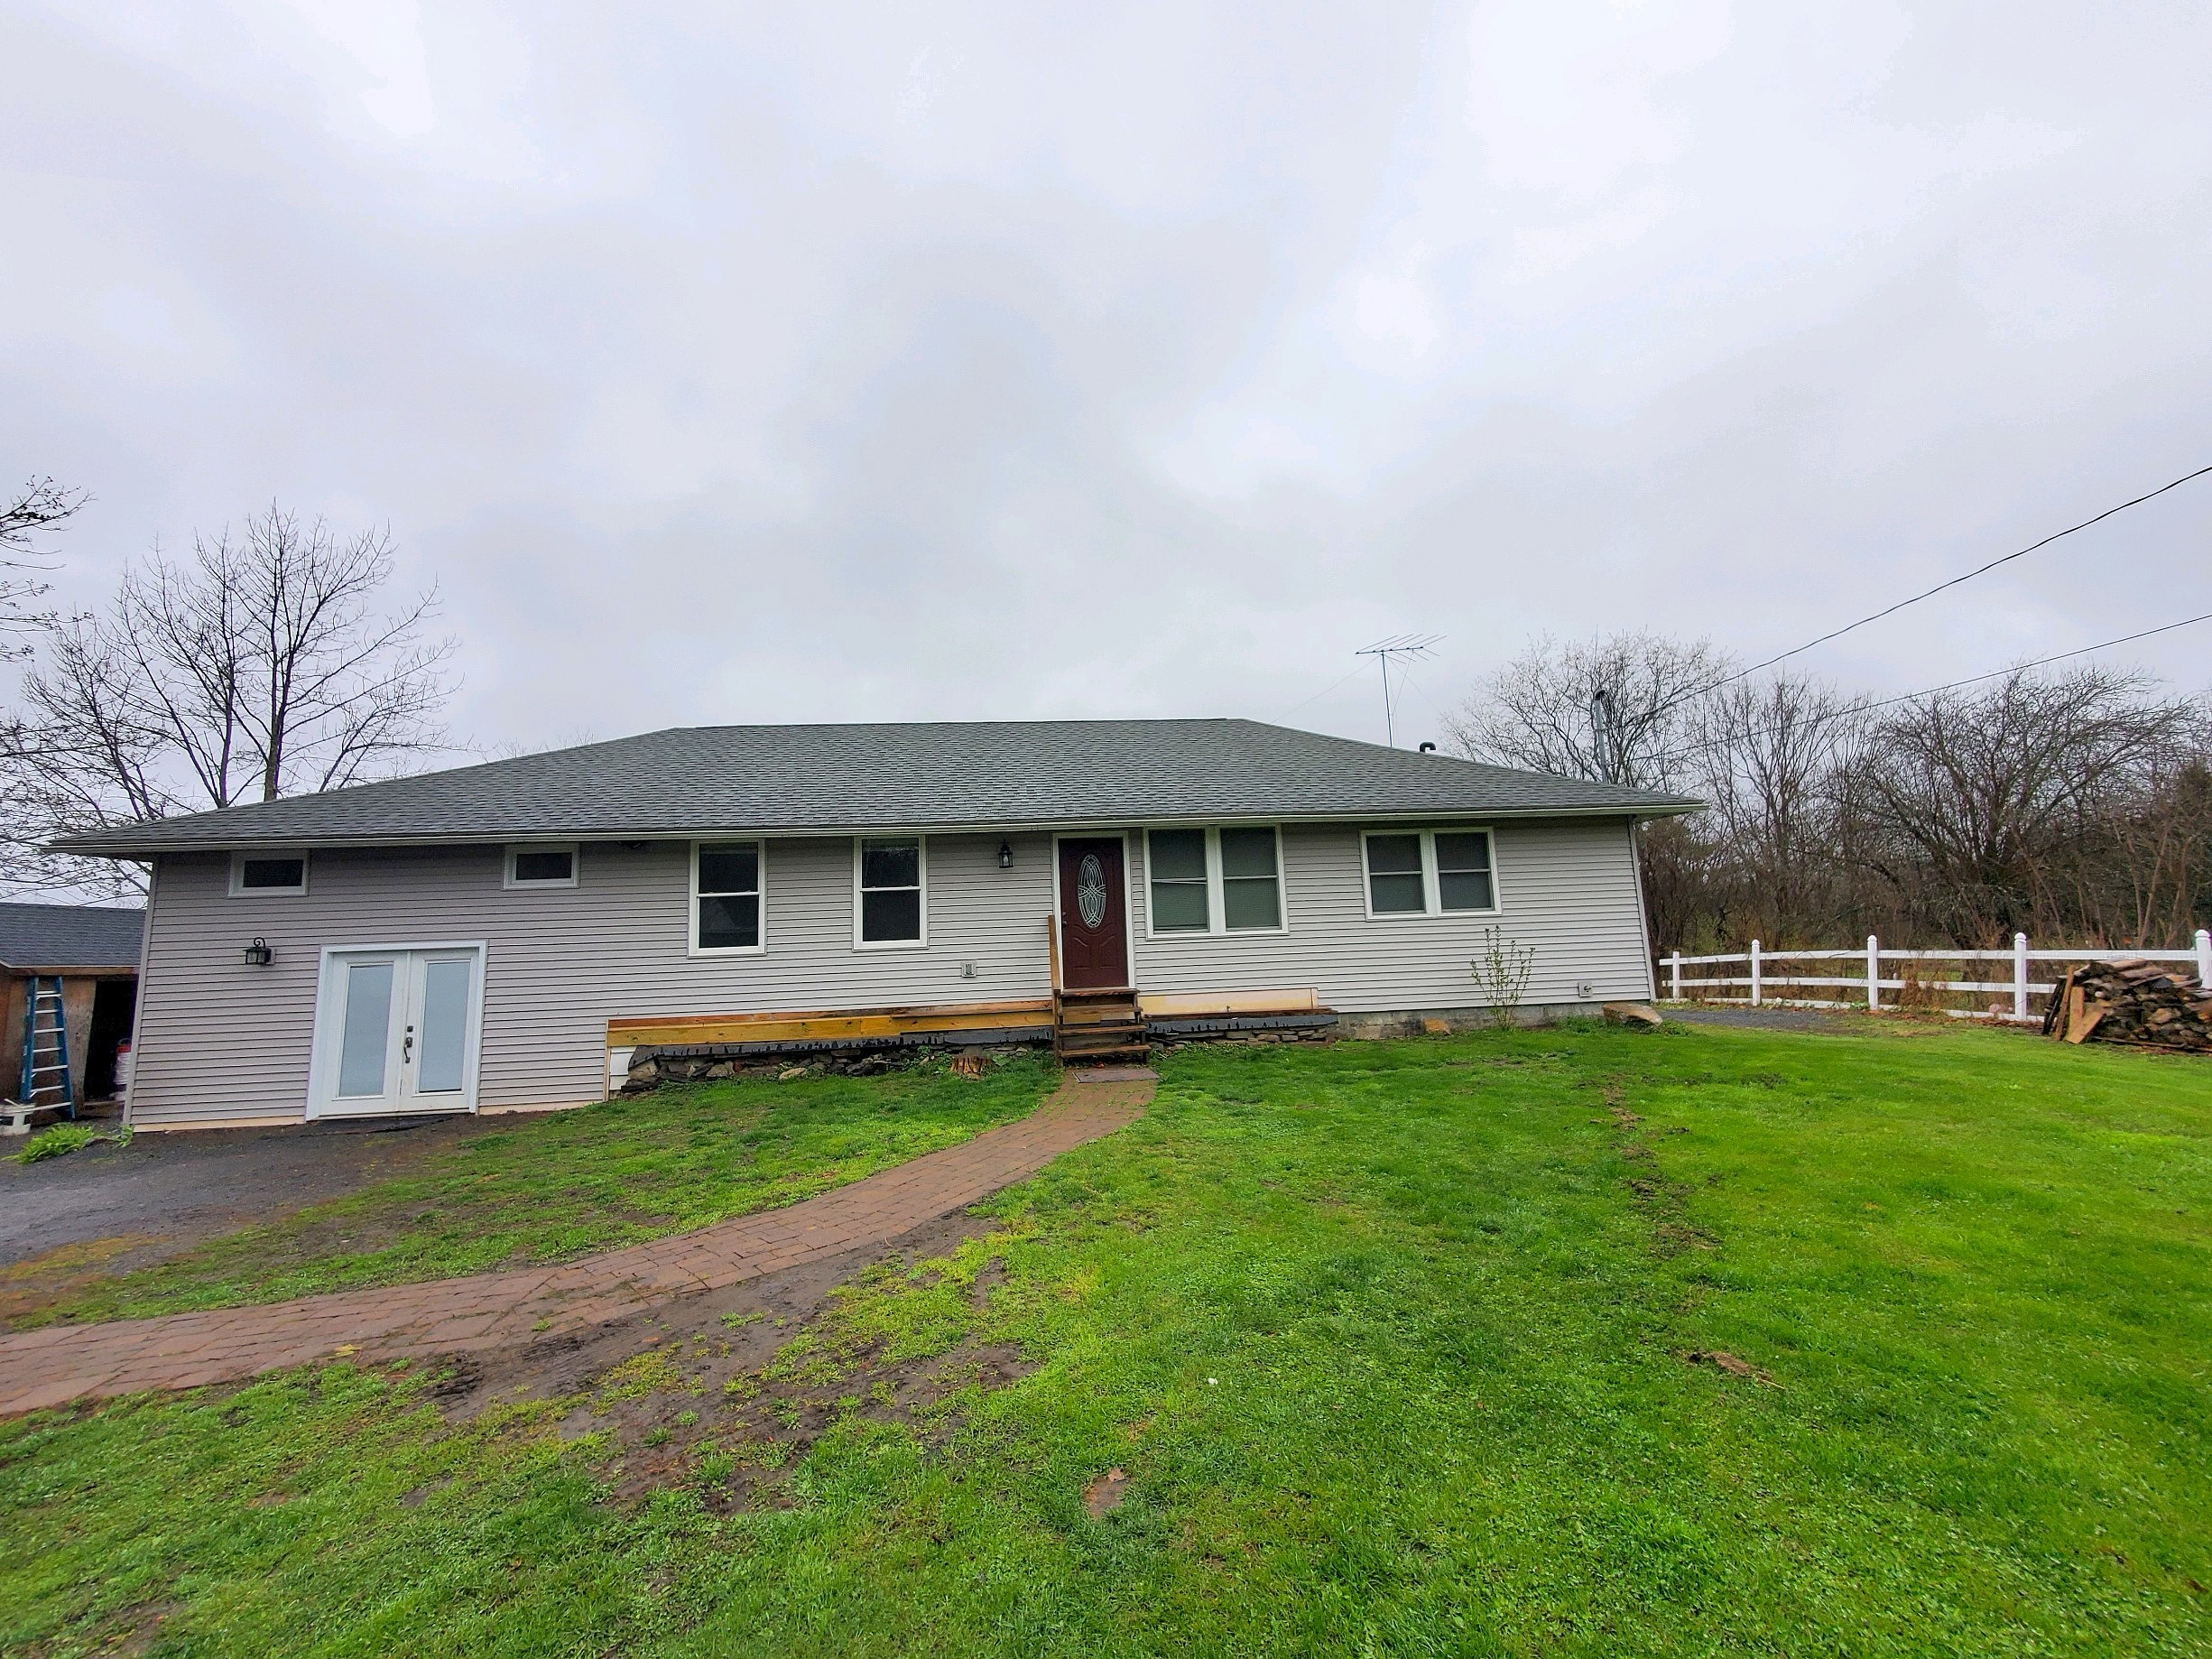 4 Bedrooms / 2 Bathrooms - Est. $1,227.00 / Month* for rent in Delanson, NY